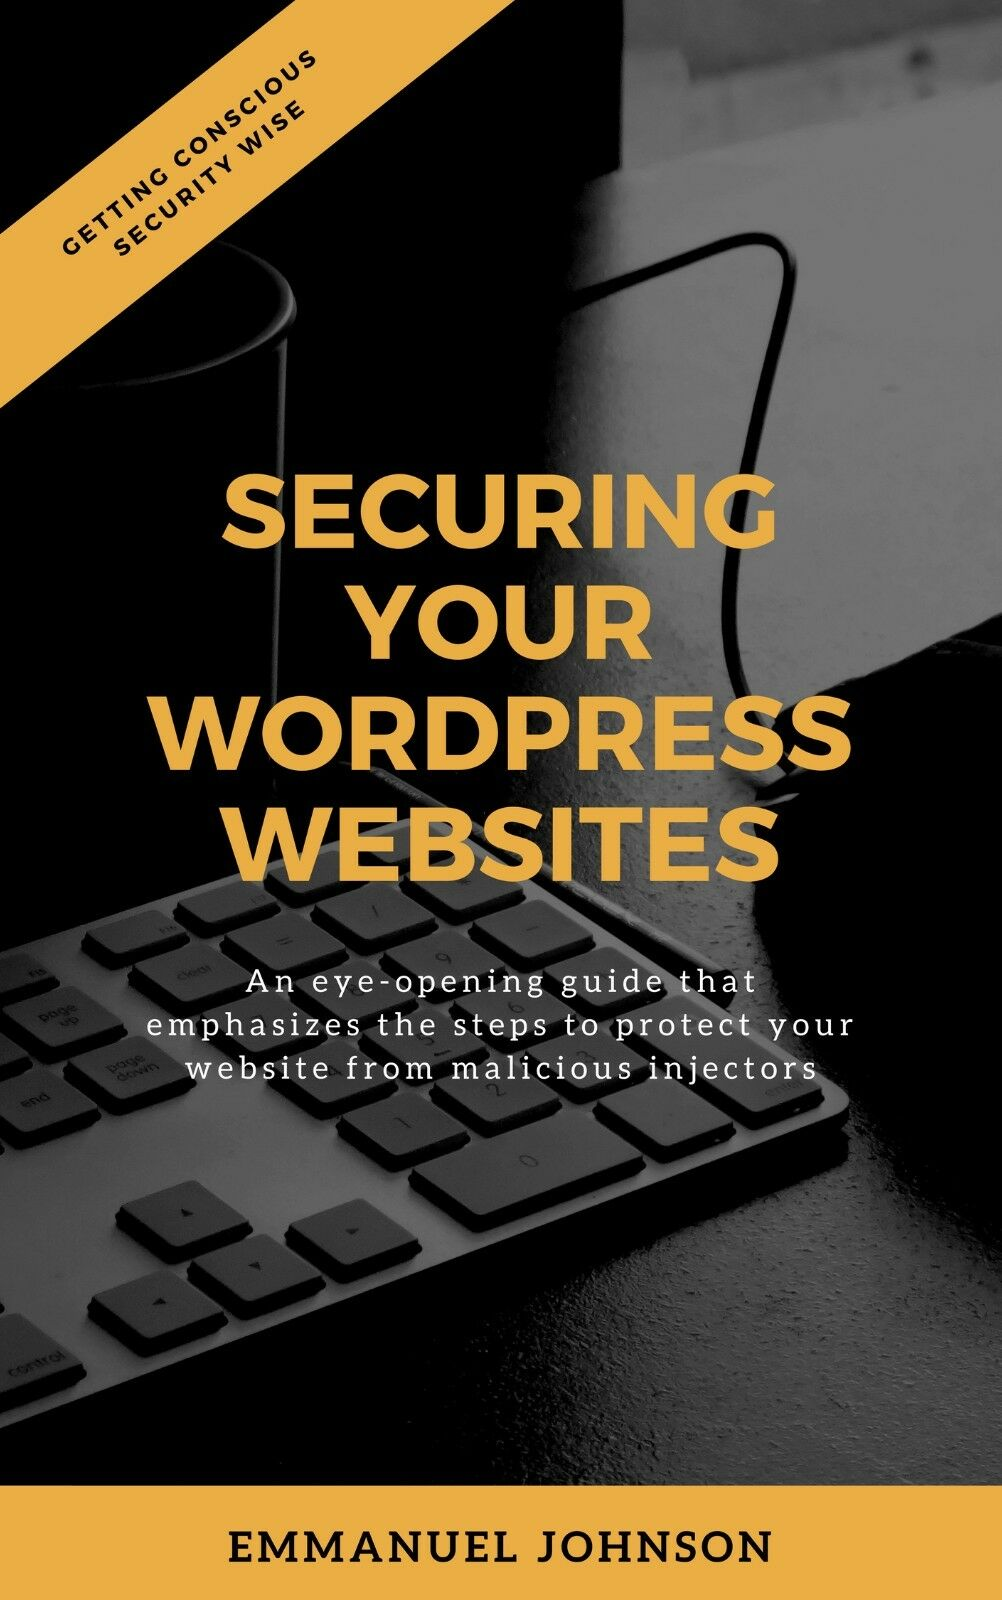 Secure Your WordPress Website With These Basic Steps To Avoid Hackers Threat